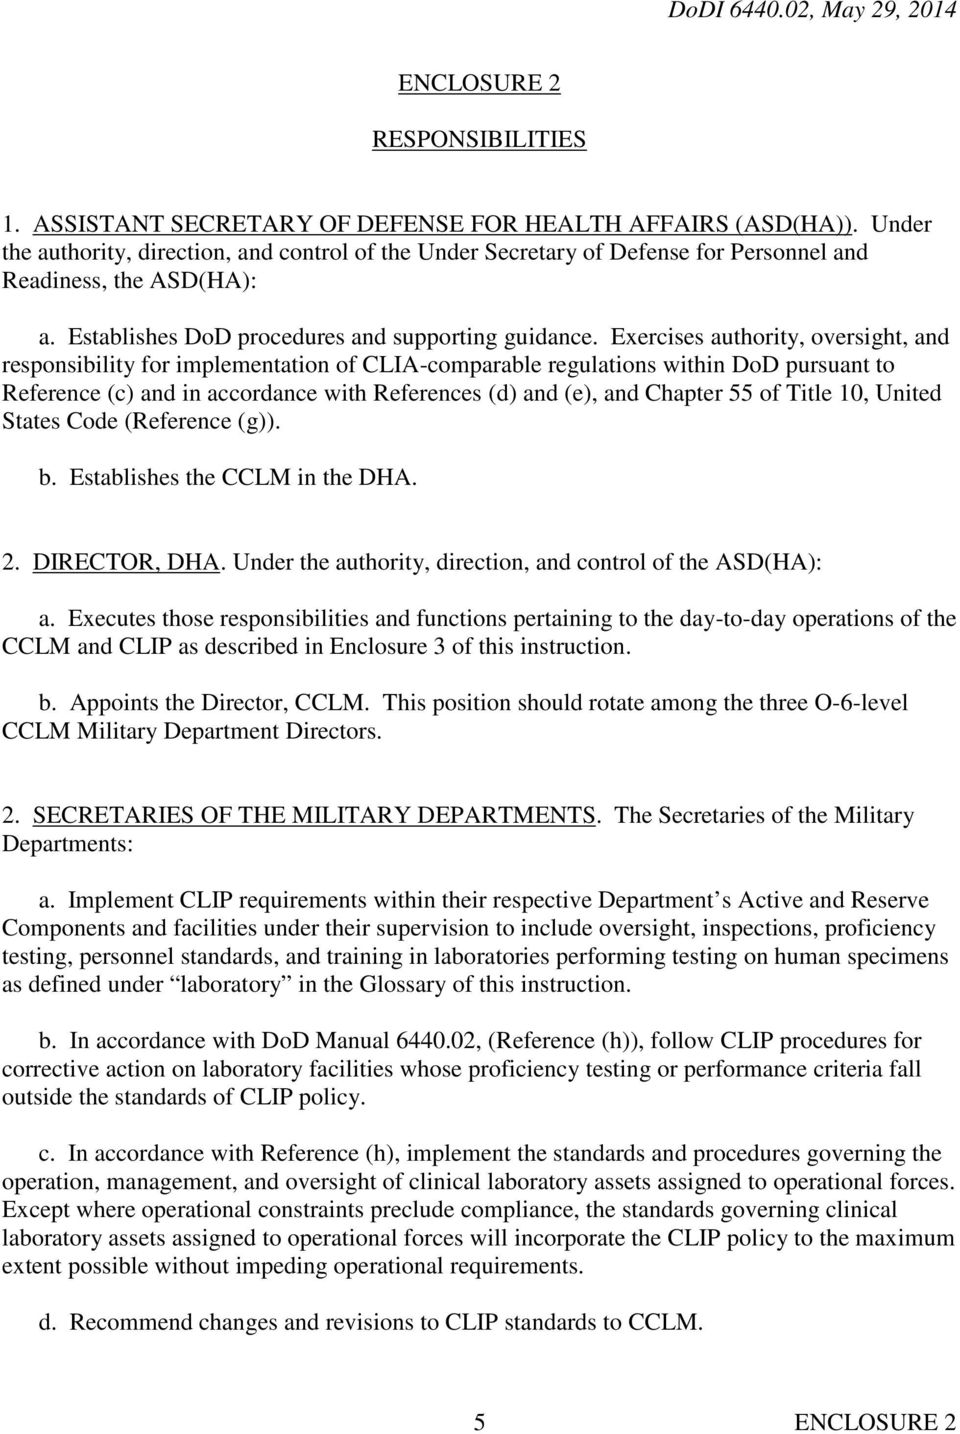 Exercises authority, oversight, and responsibility for implementation of CLIA-comparable regulations within DoD pursuant to Reference (c) and in accordance with References (d) and (e), and Chapter 55